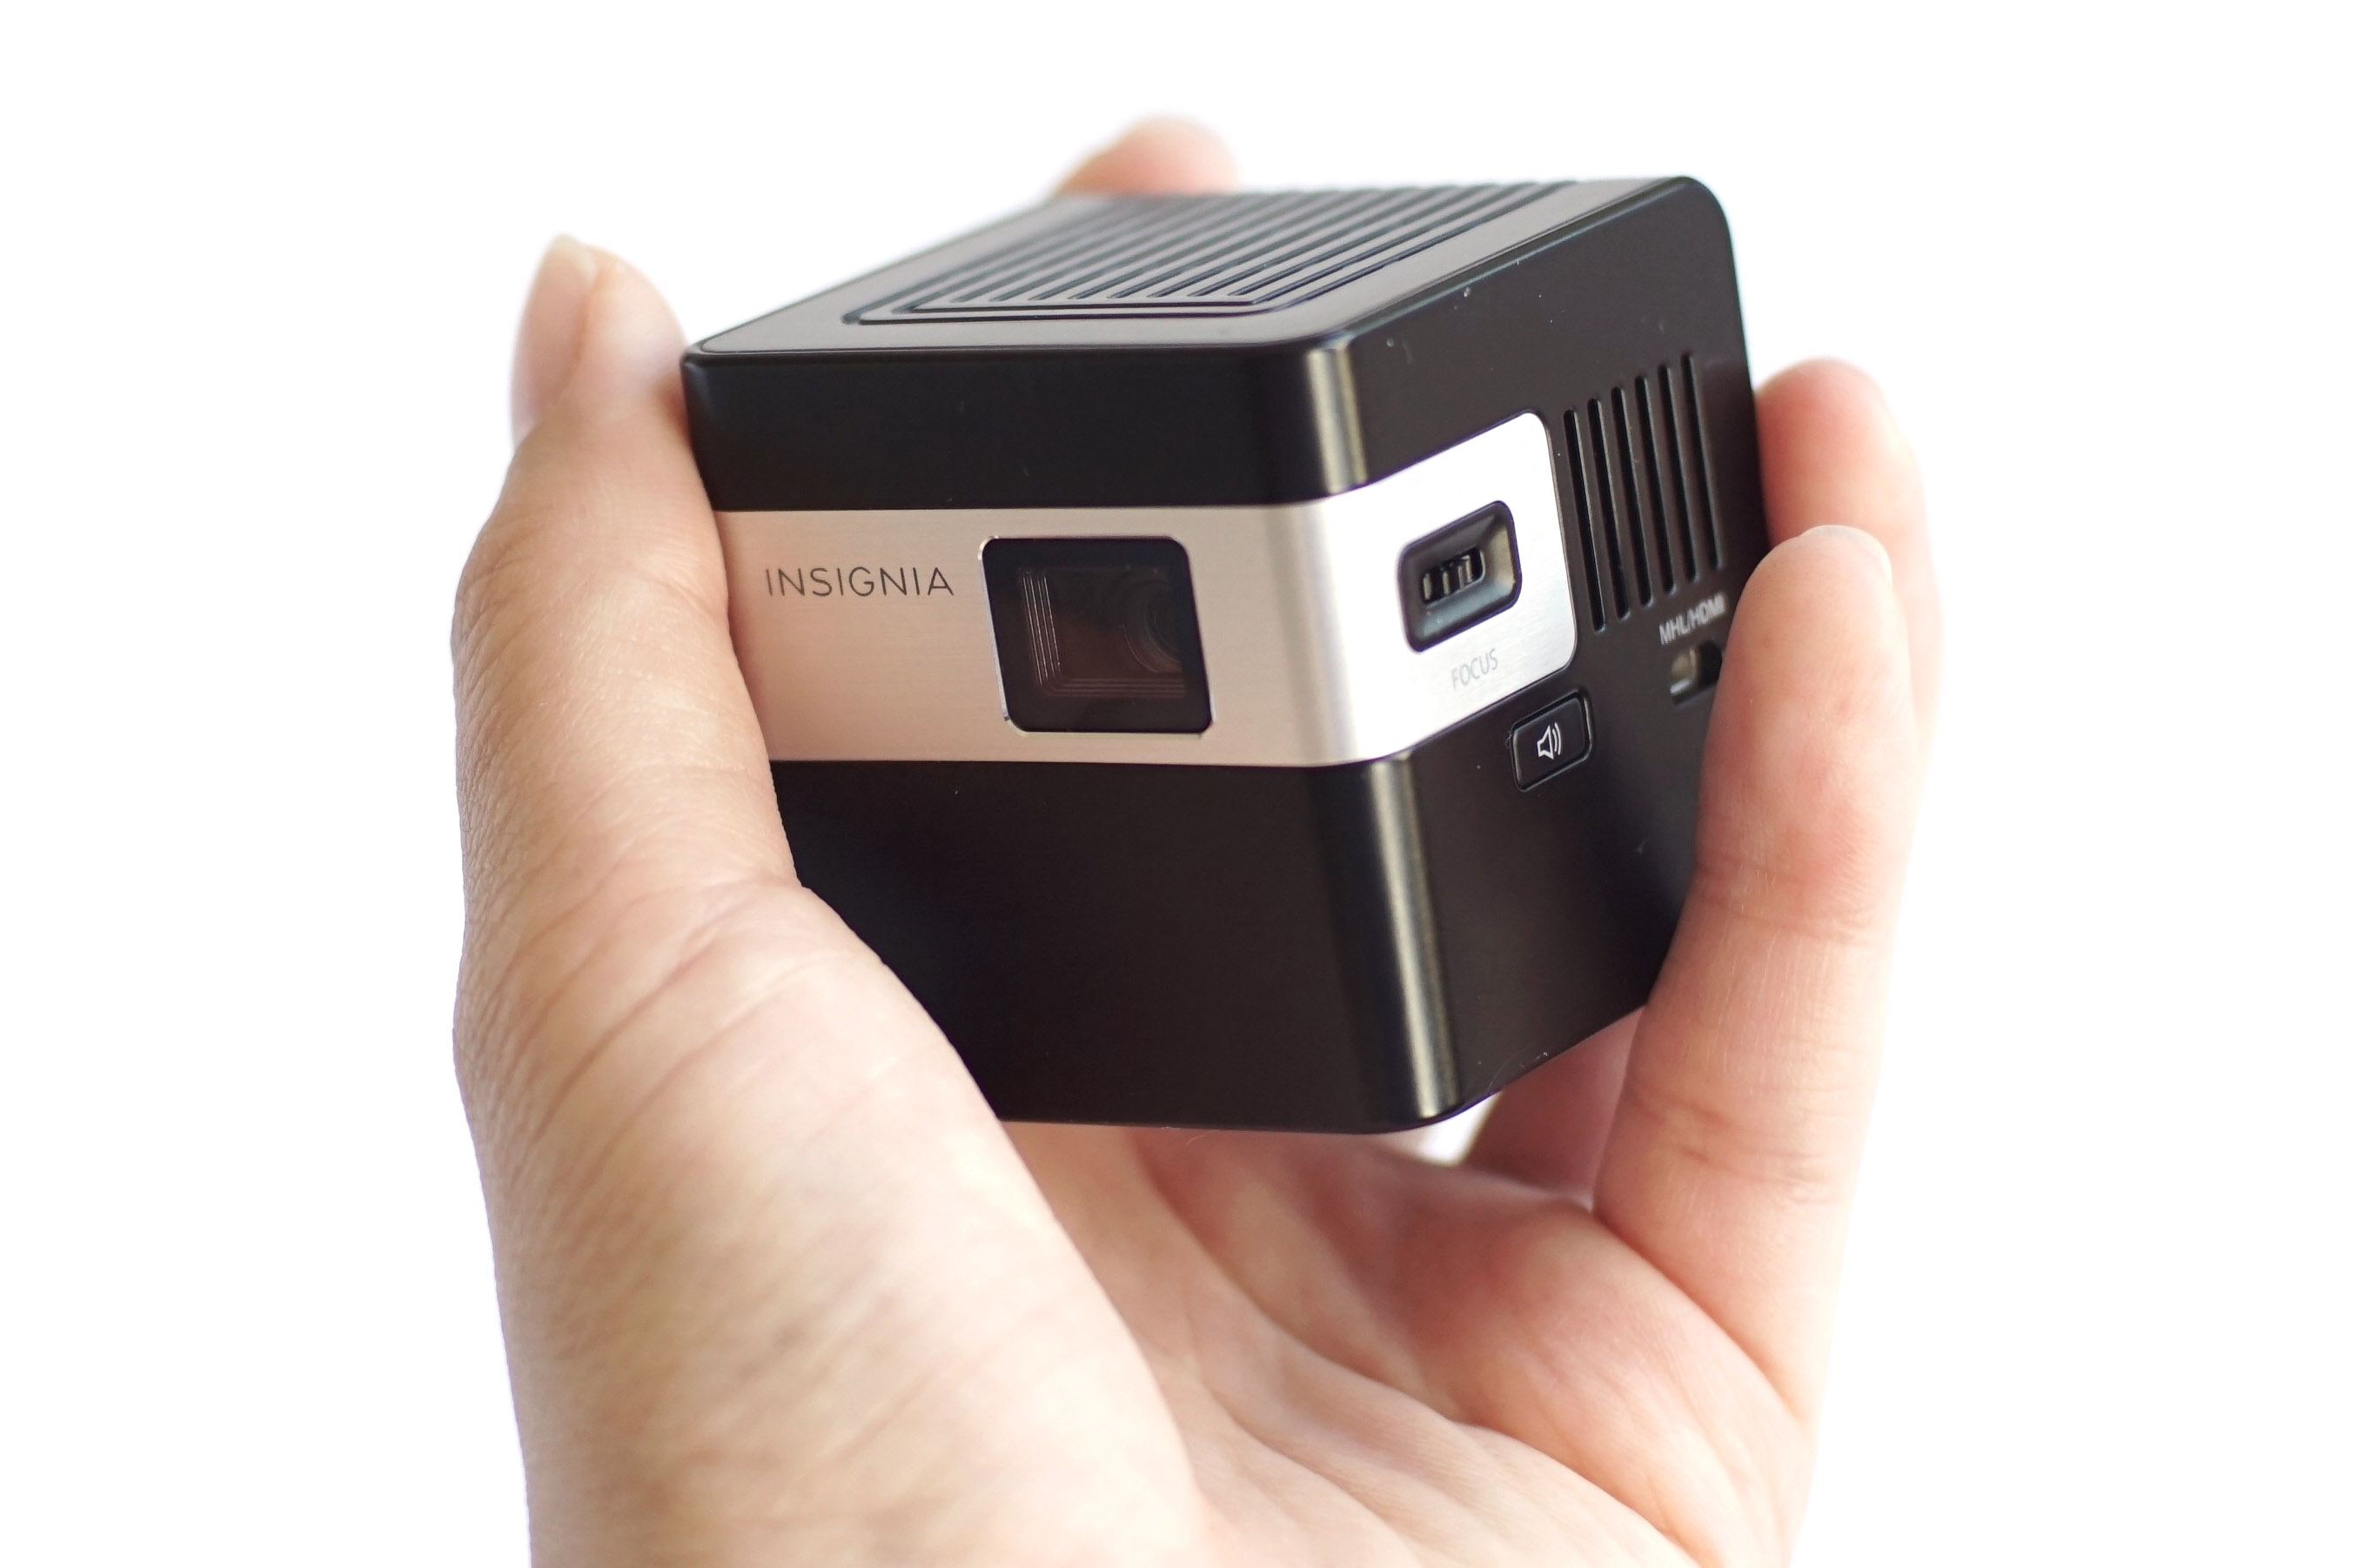 Insignia pocket projector review best buy blog for Best pocket projector review